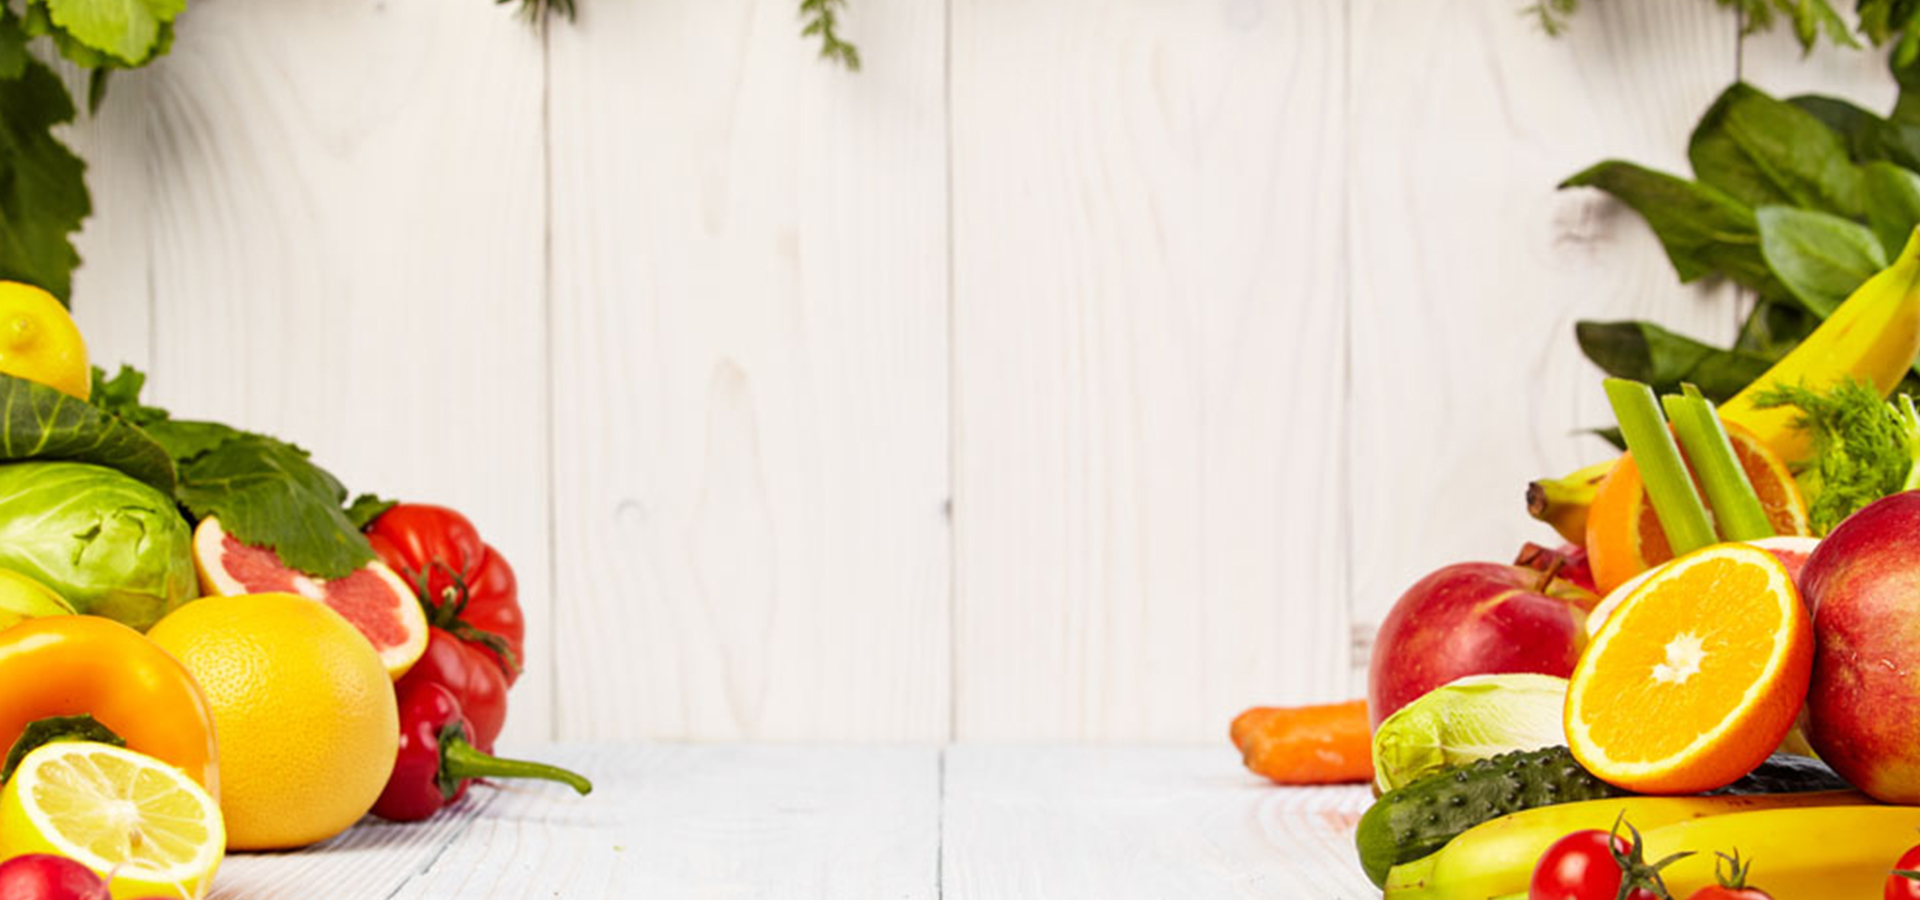 Fruits And Vegetables Background, Kitchen, Ingredients ...